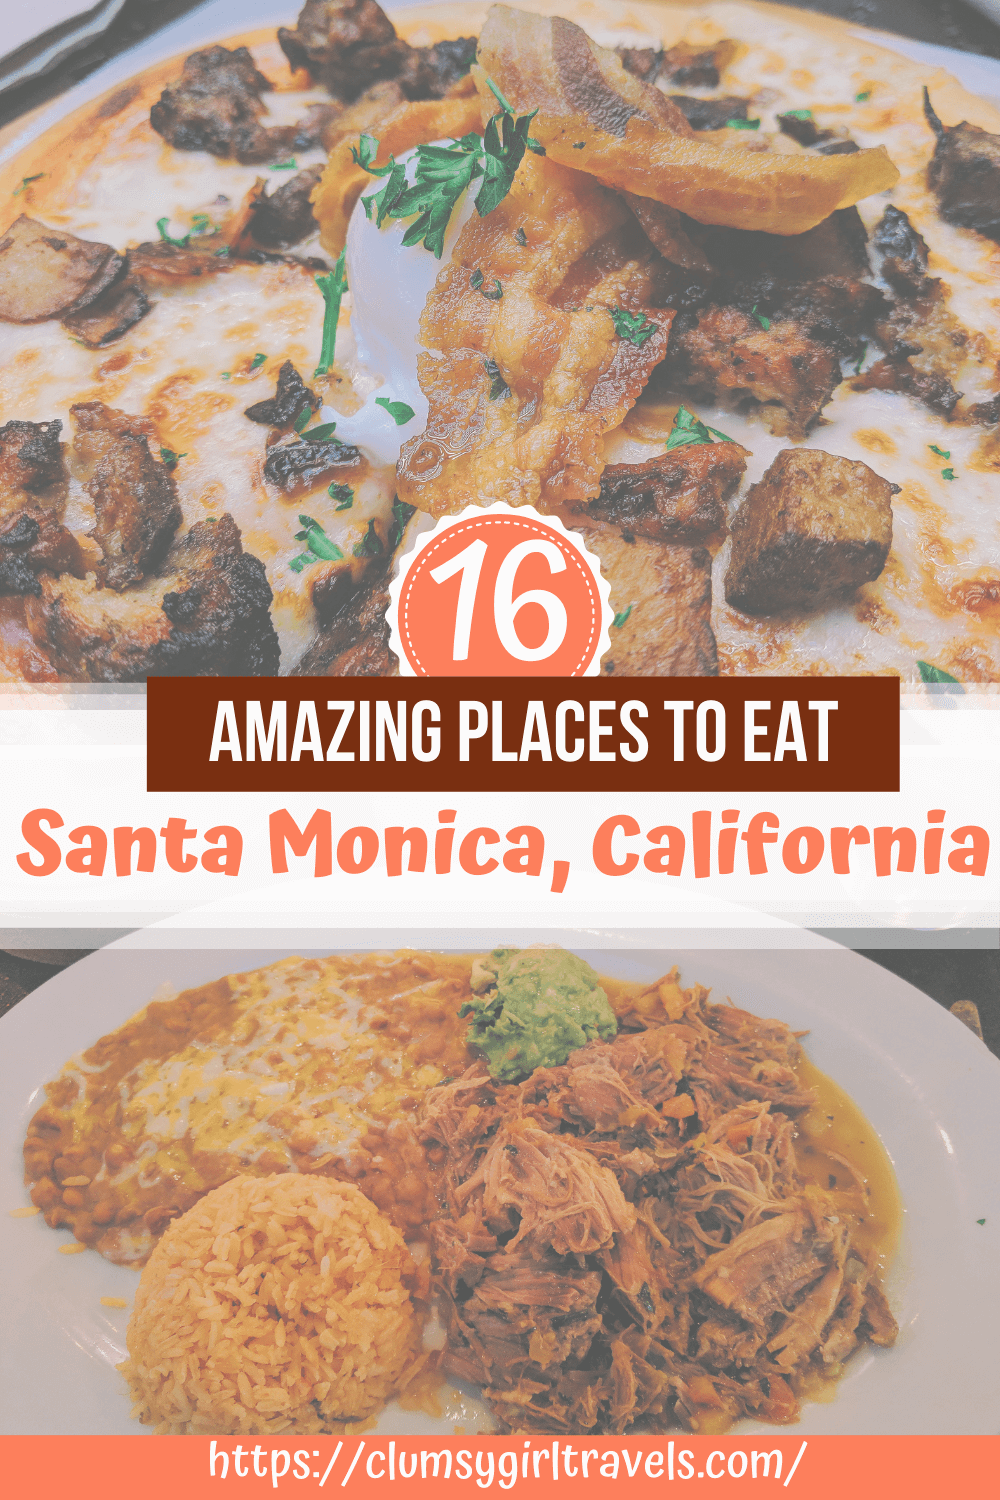 If you are wondering where to eat in Santa Monica, this is the guide for you. Santa Monica has tons of amazing restaurants just waiting to be discovered. #santamonicatravel #losangelestravel #californiatravel